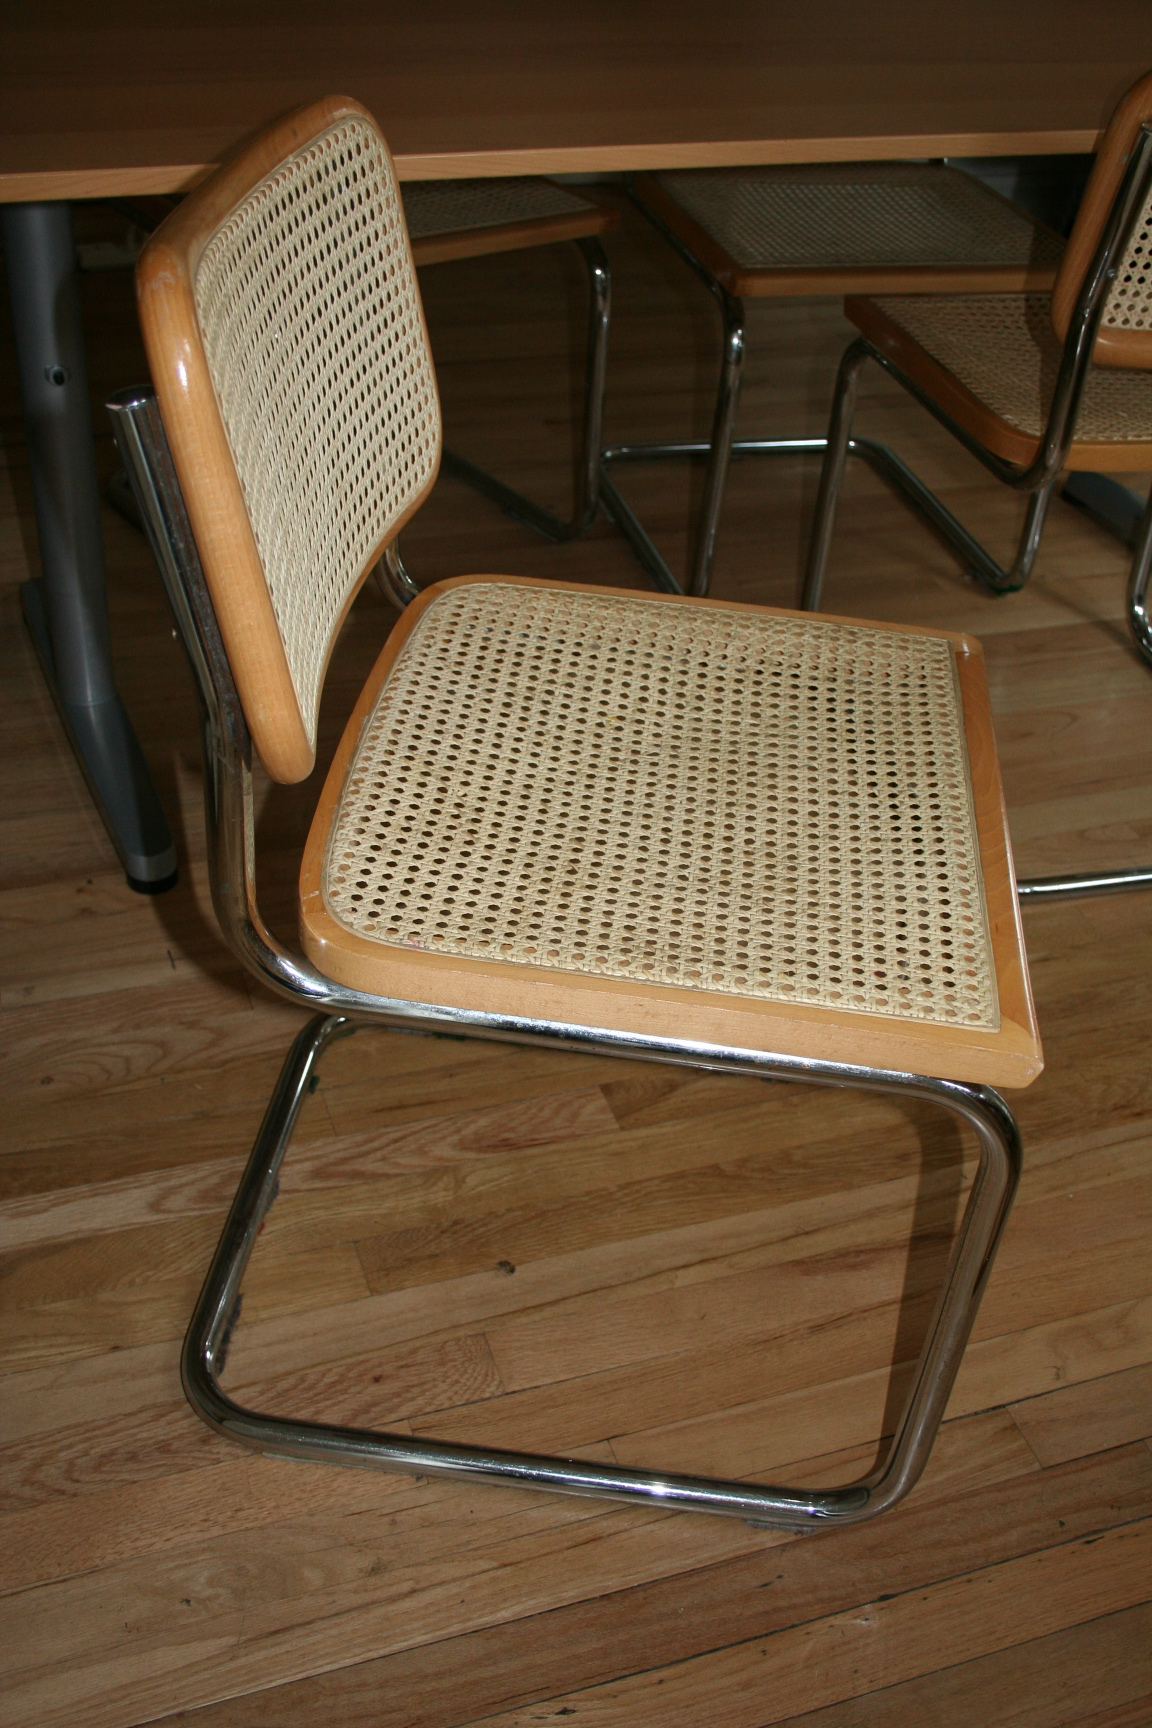 Chair from my husband's bachelor days